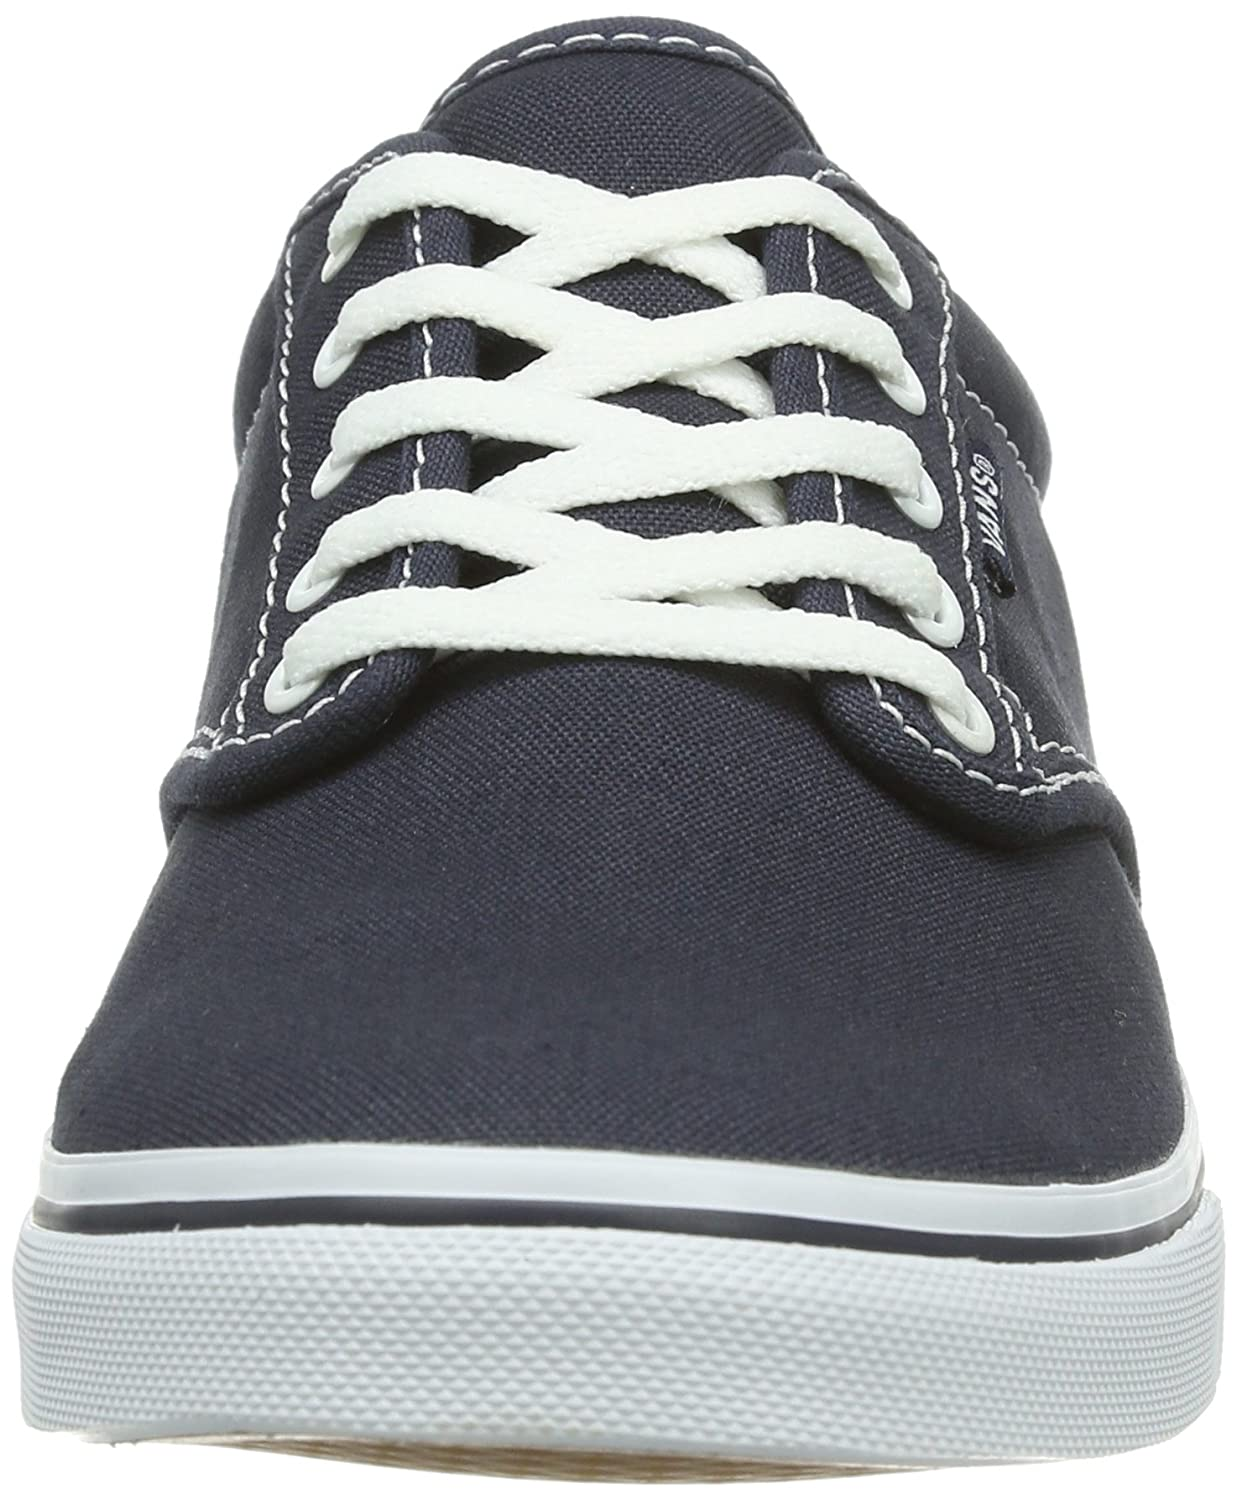 Atwood Vans Baskets Mode Femme Vans Chaussures W Low POO5axw8q